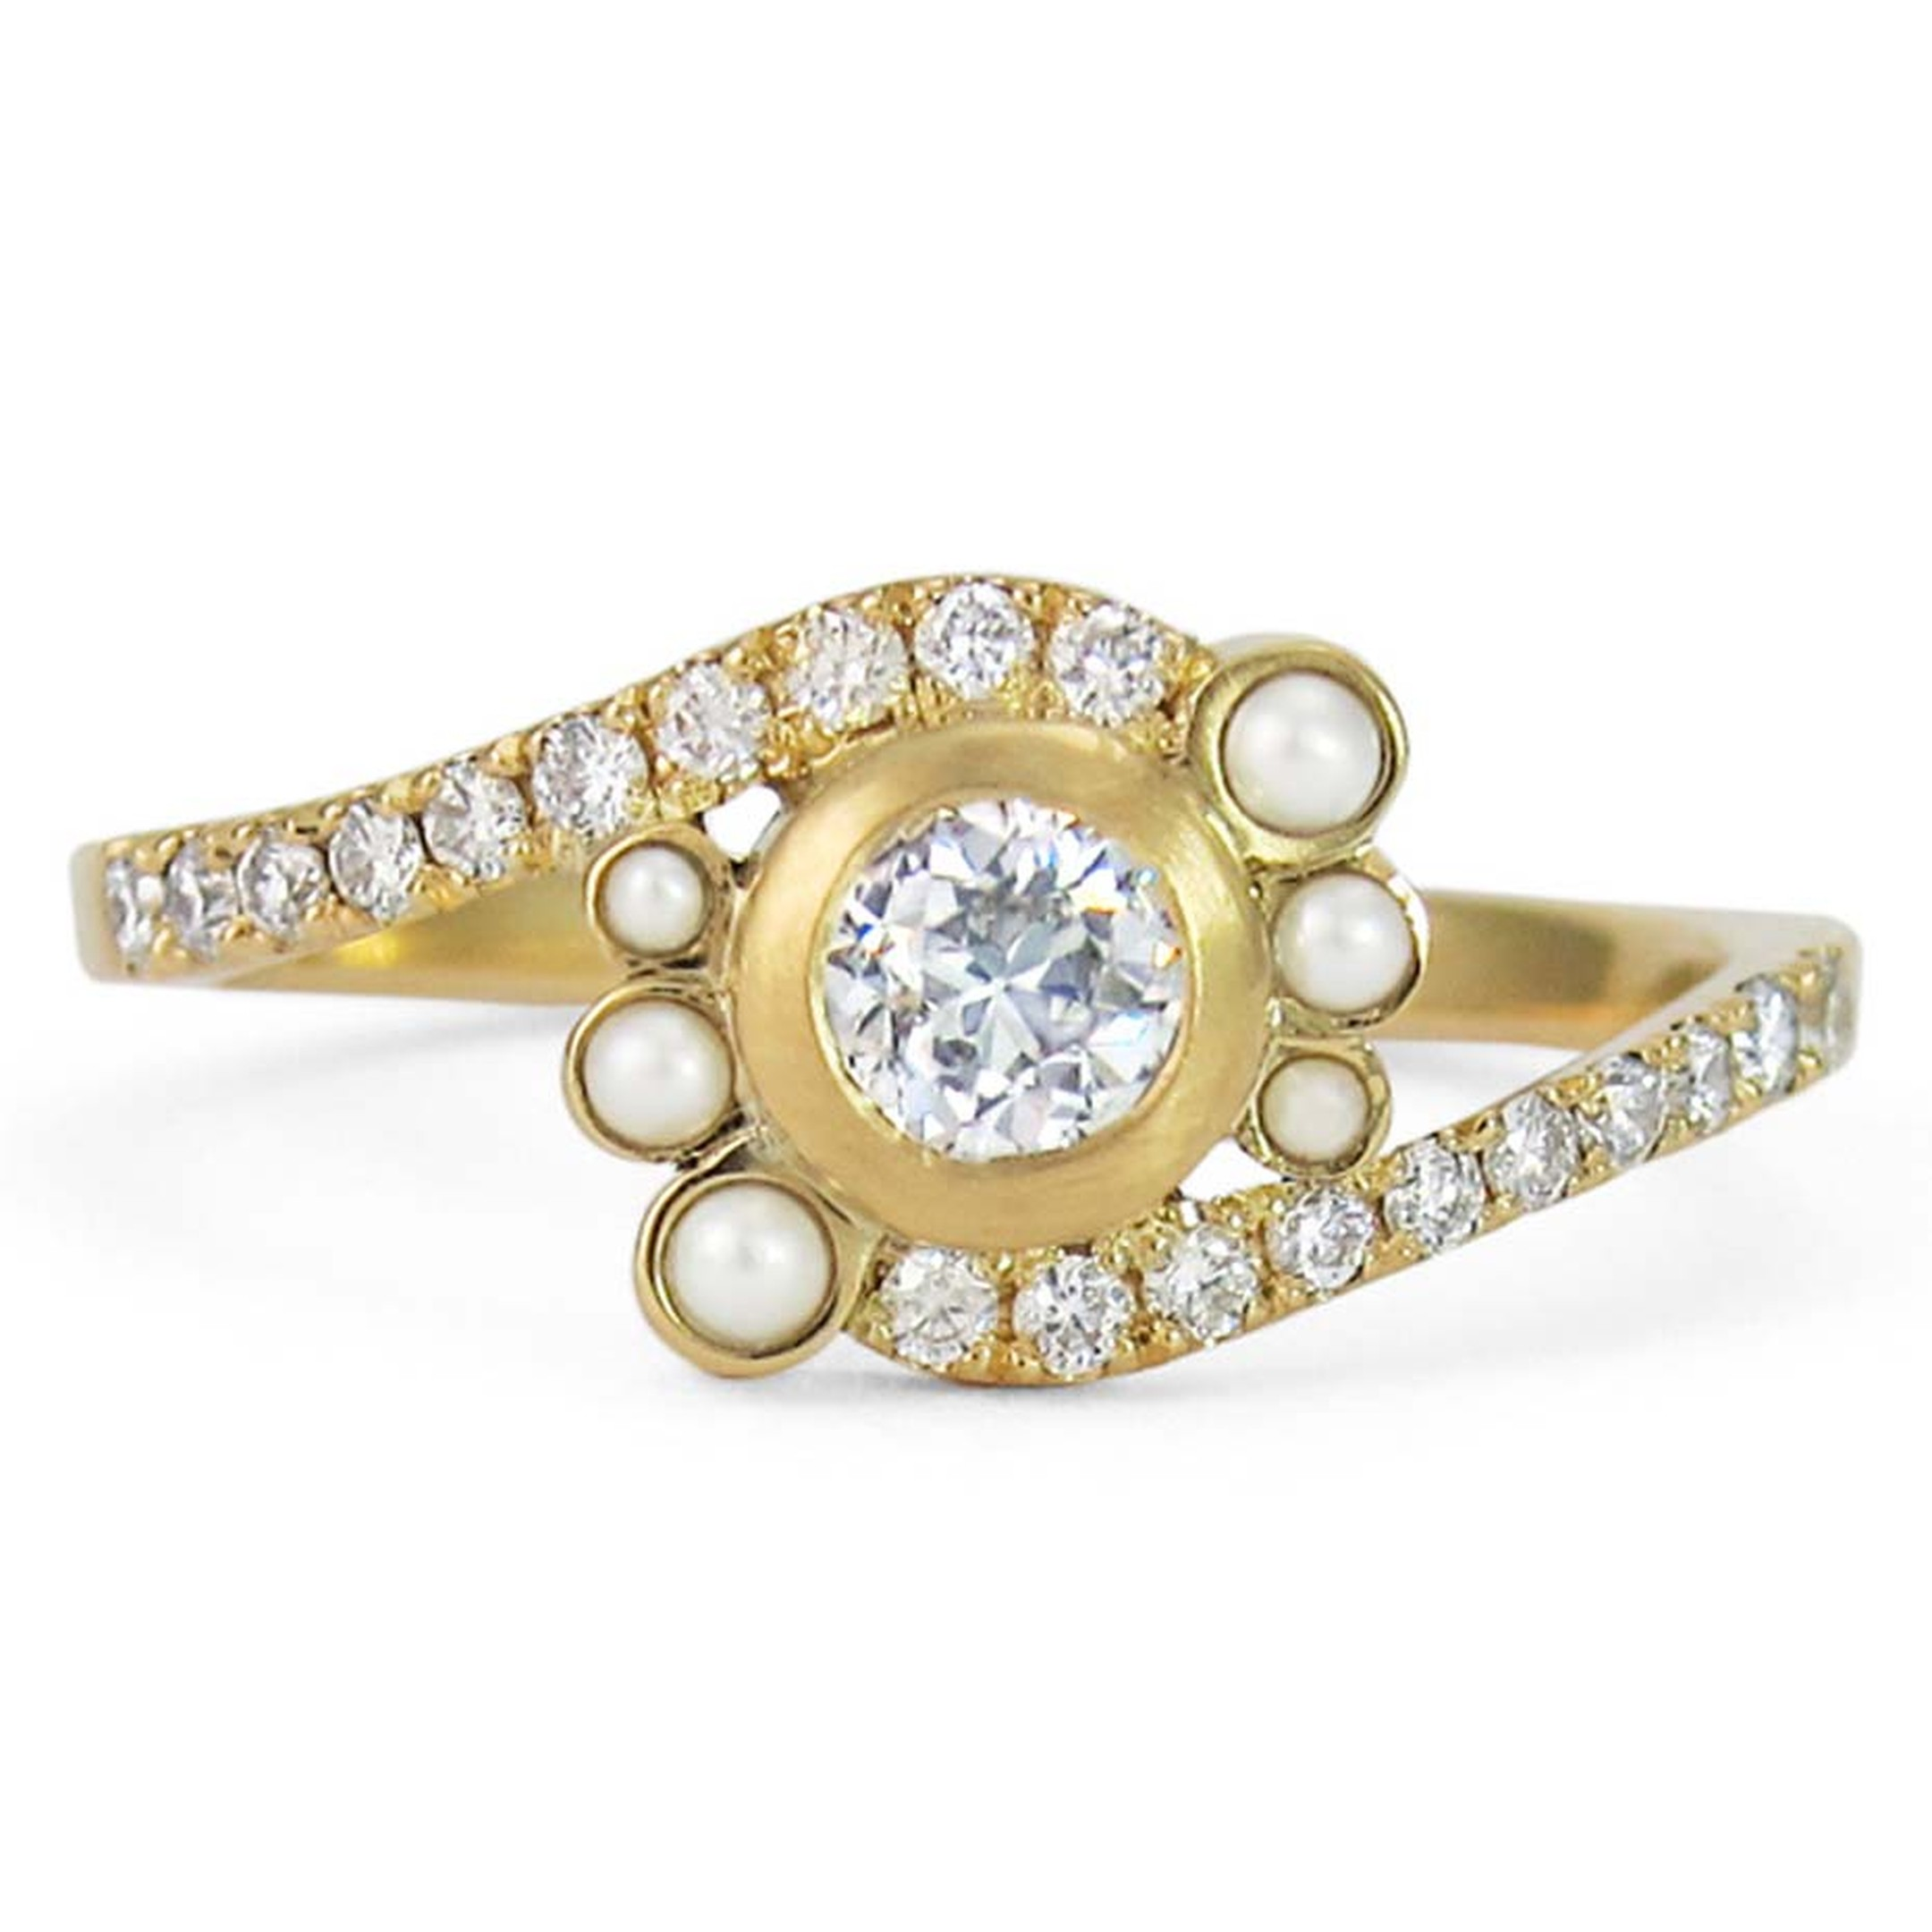 Jessica Poole engagement ring featuring a centre brilliant-cut diamond encircled by 6 pearls and a pavé diamond band.